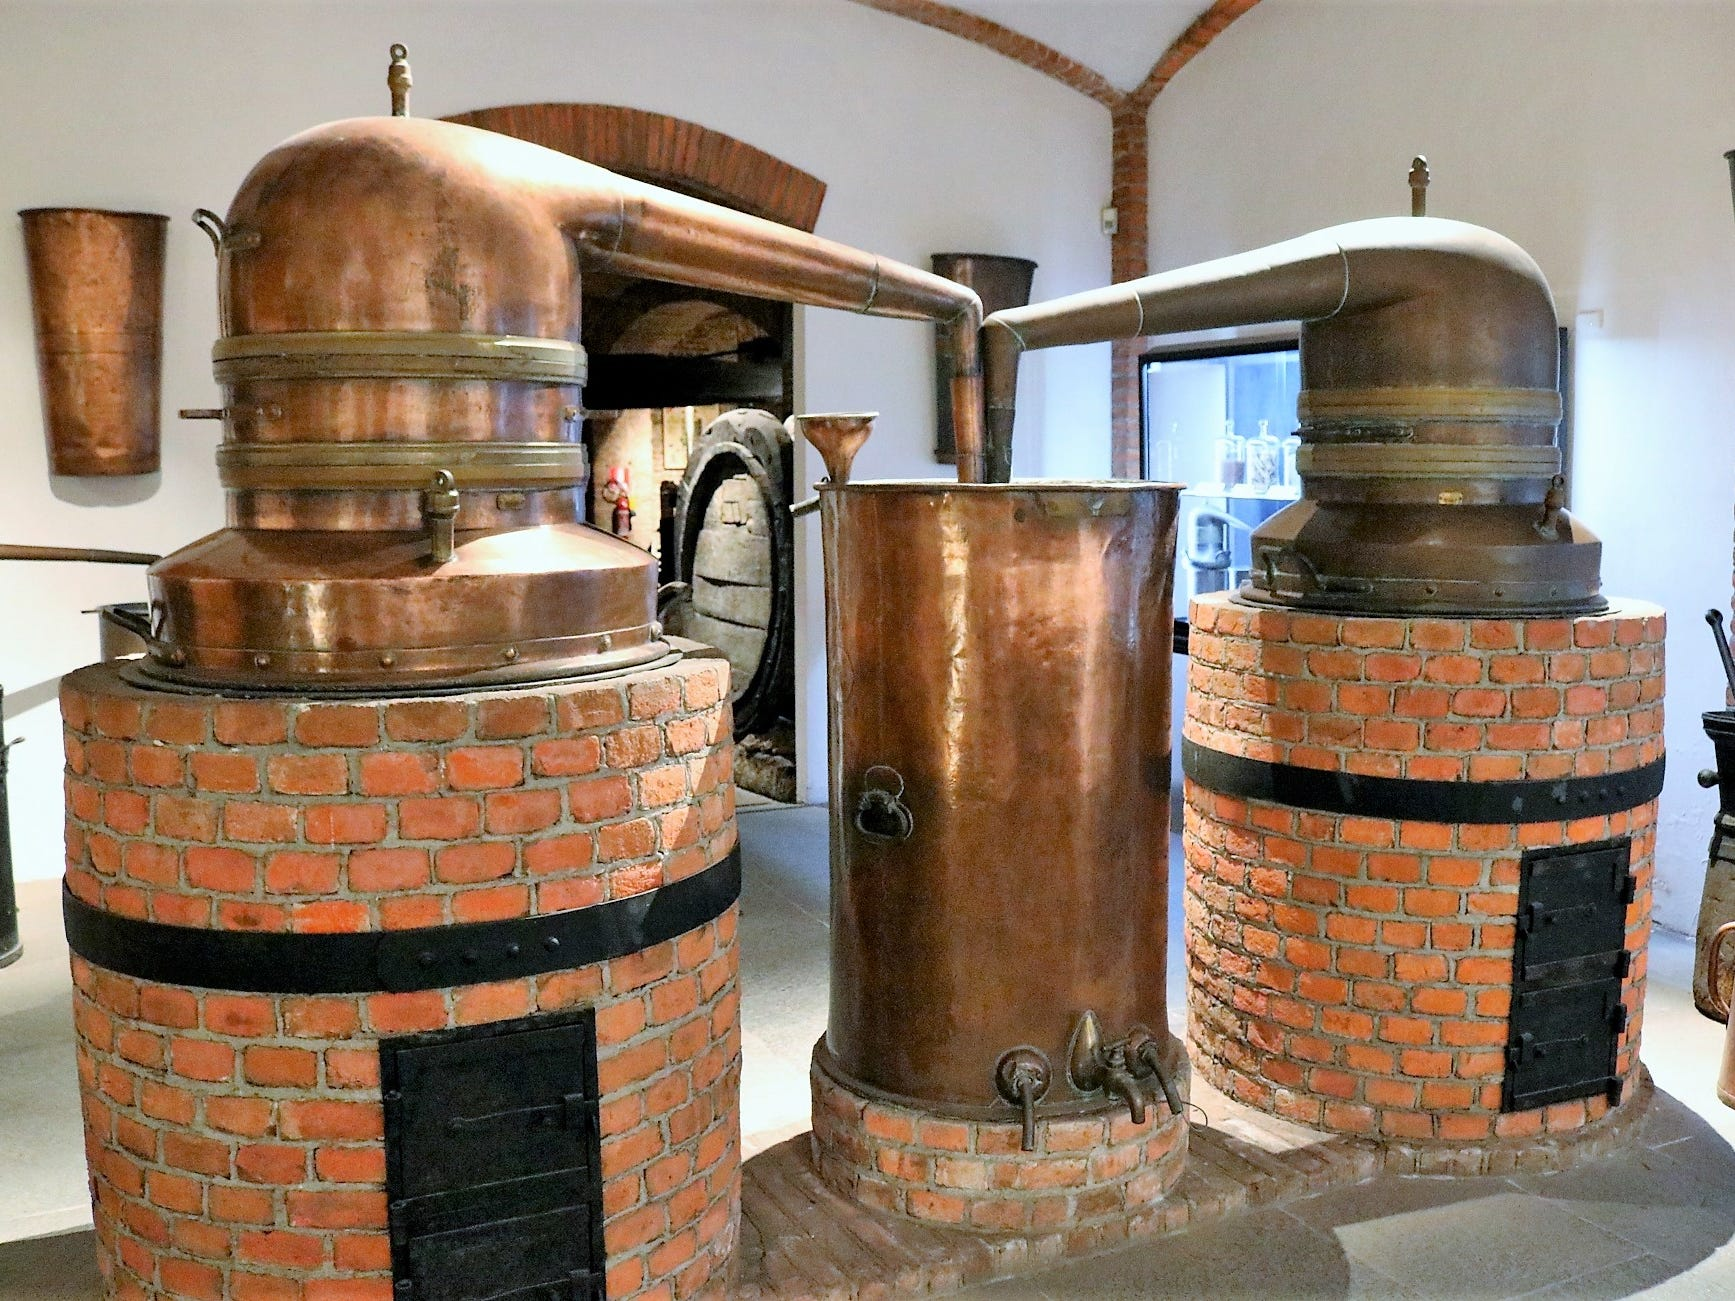 """Artifacts include wine presses, transportation vessels, glassware and even copper pot stills. """"Wine is the living ingredient of Martini, the most important ingredient,"""" Fanciotto says. Any exploration of the brand therefore should start with an exploration of this ingredient."""